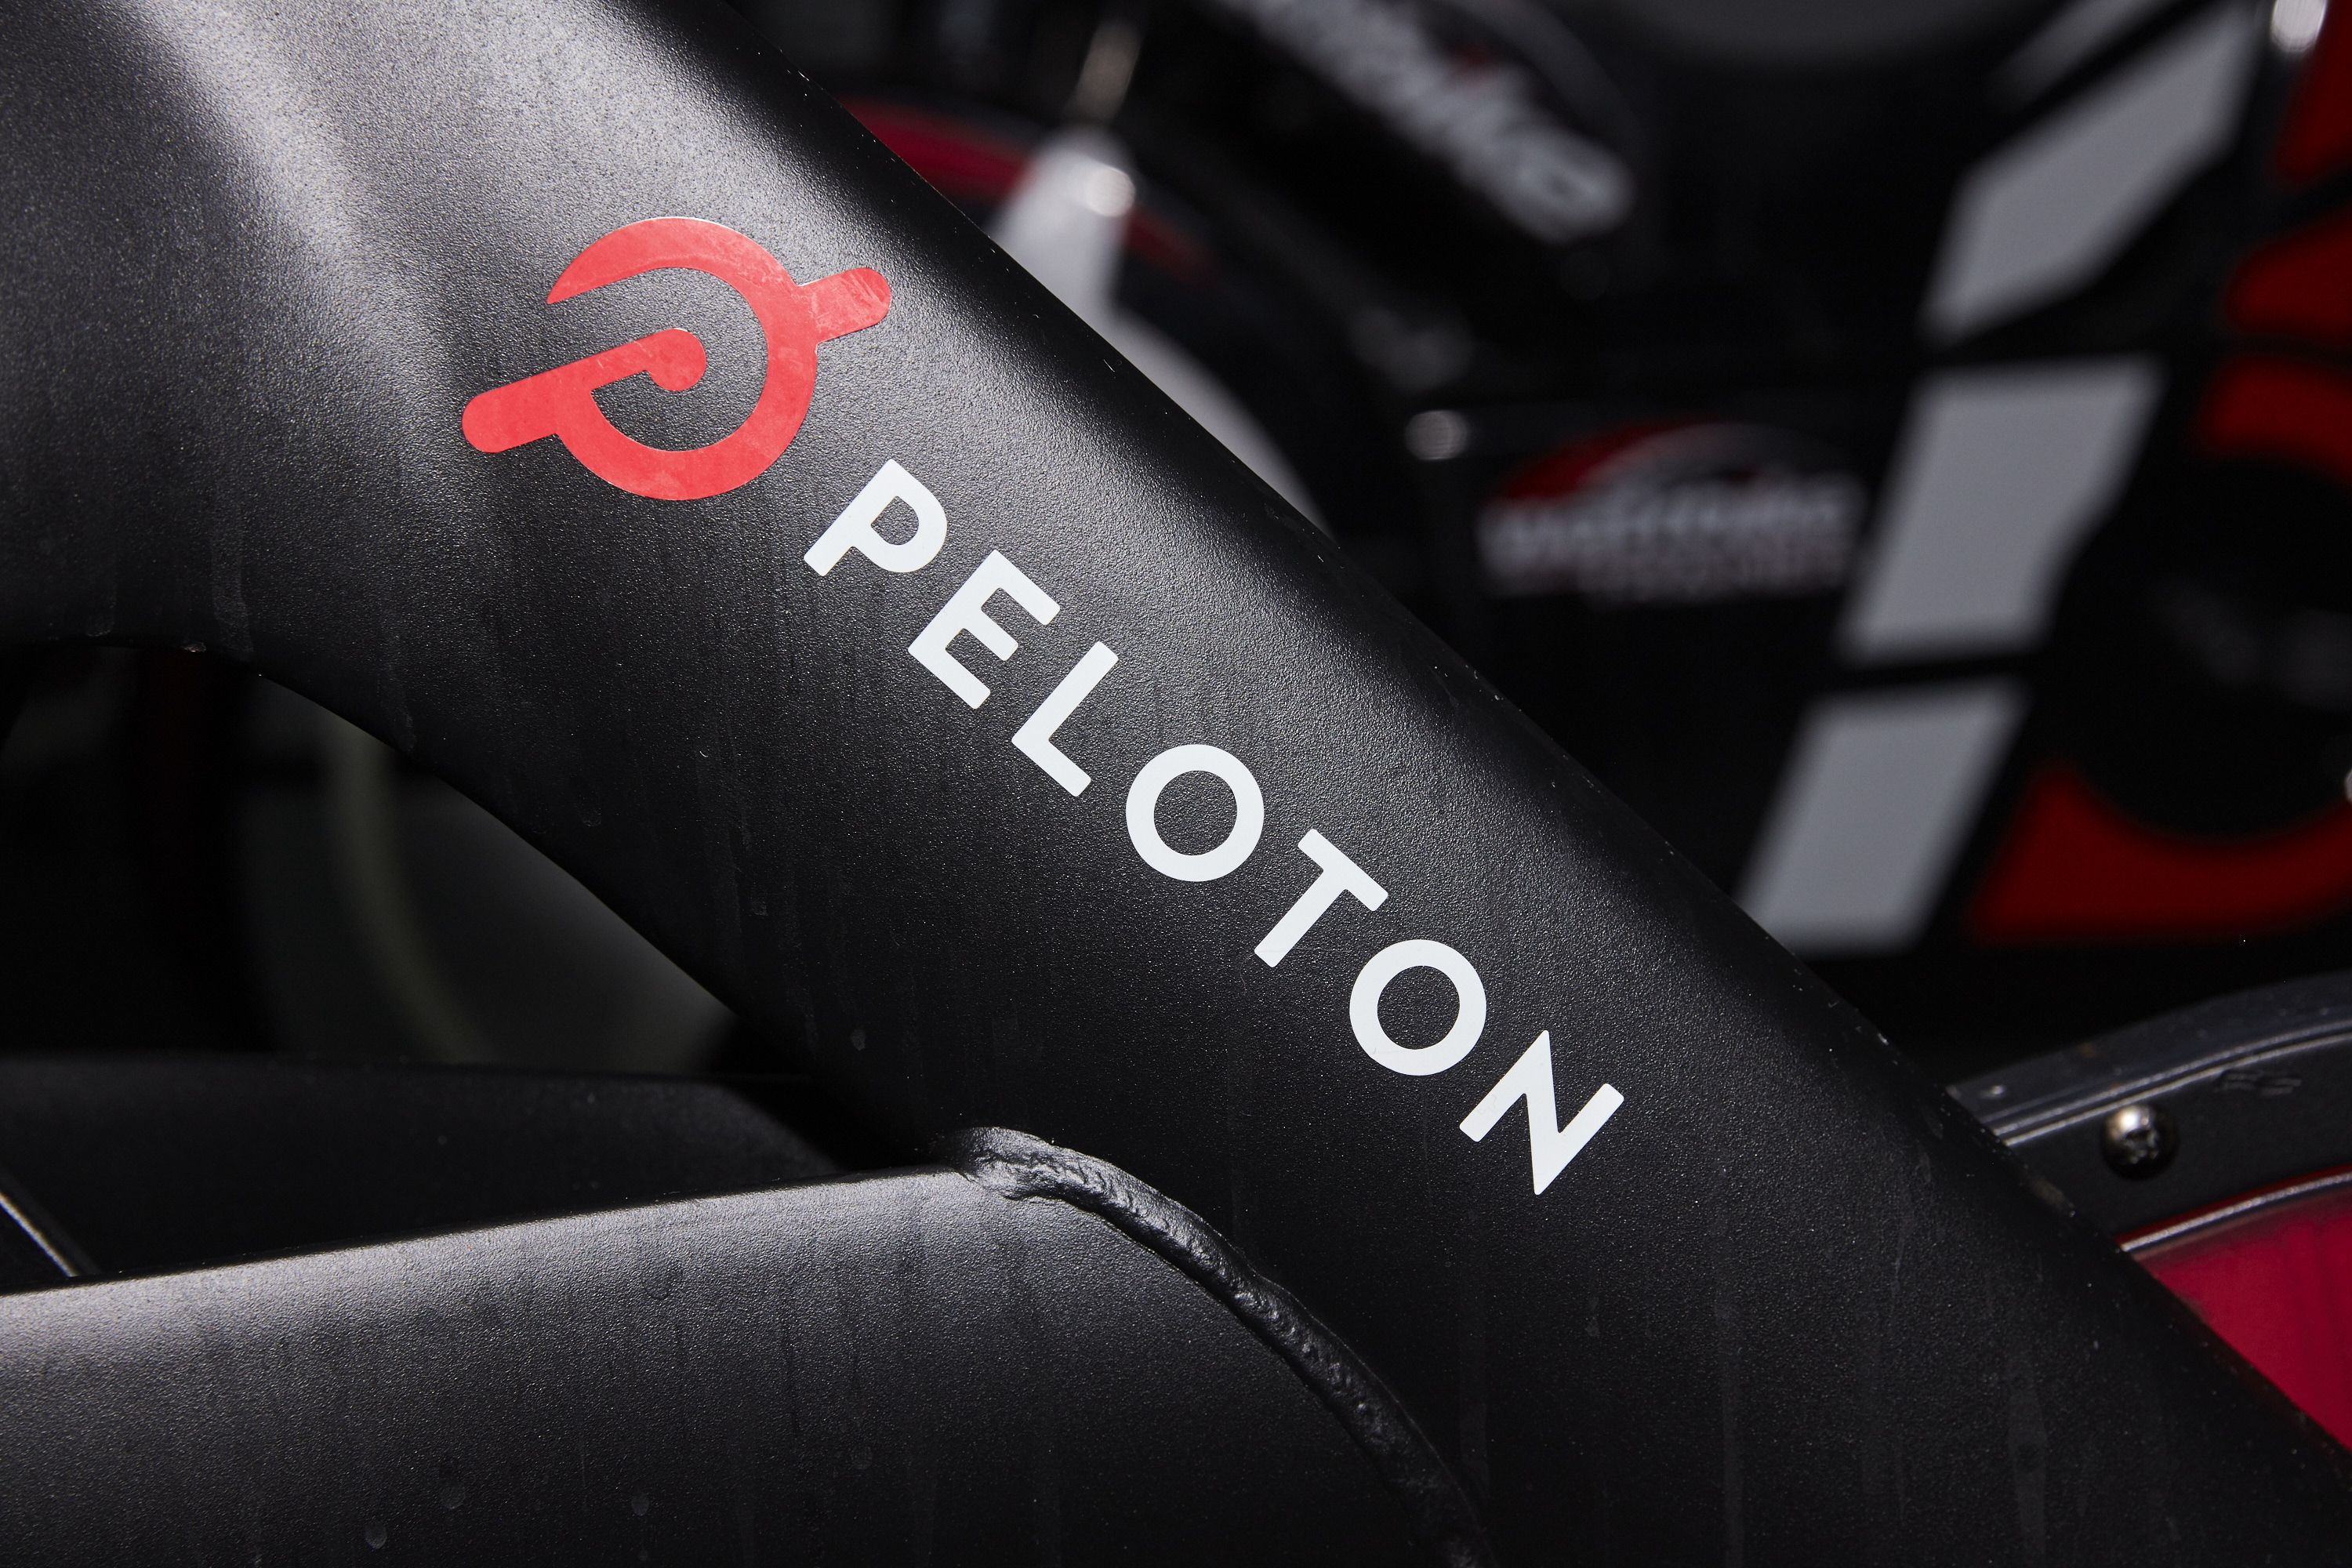 The Peloton Bike Brings the Spin Class Party to Your House